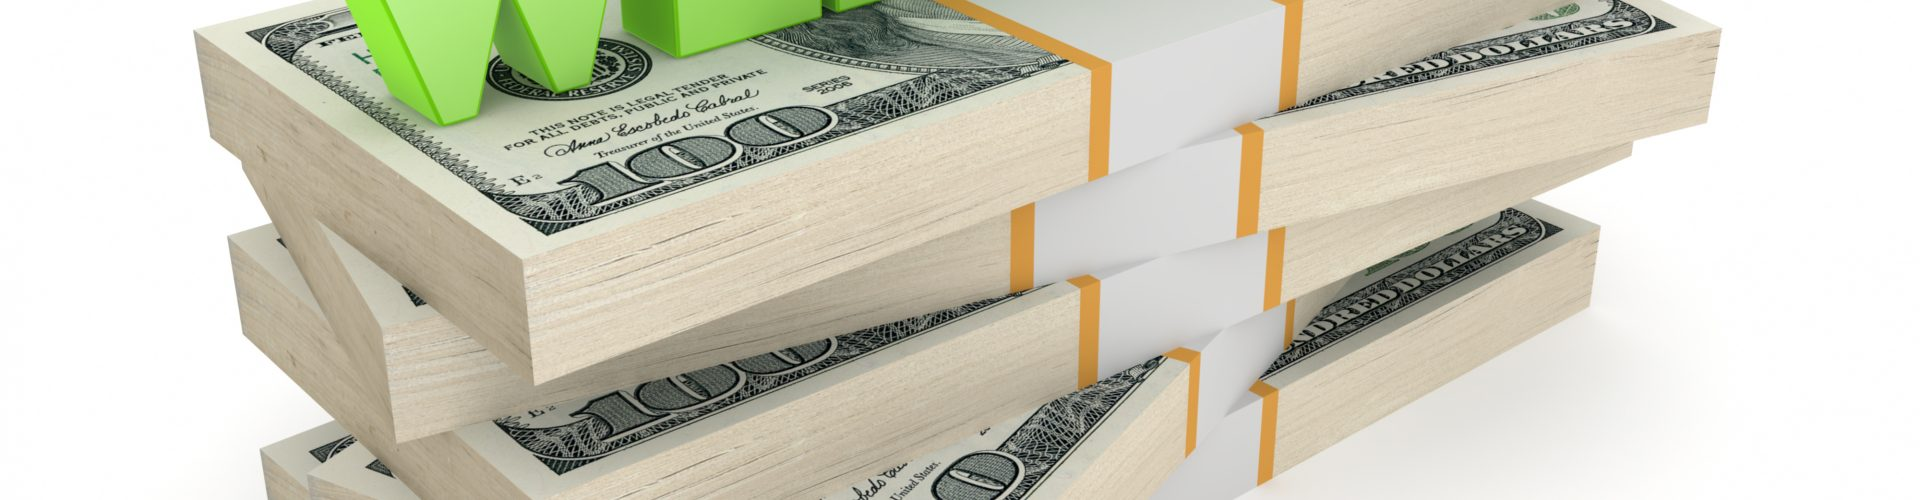 Word WEBINAR on stack of dollars.Isolated on white.3d rendered.